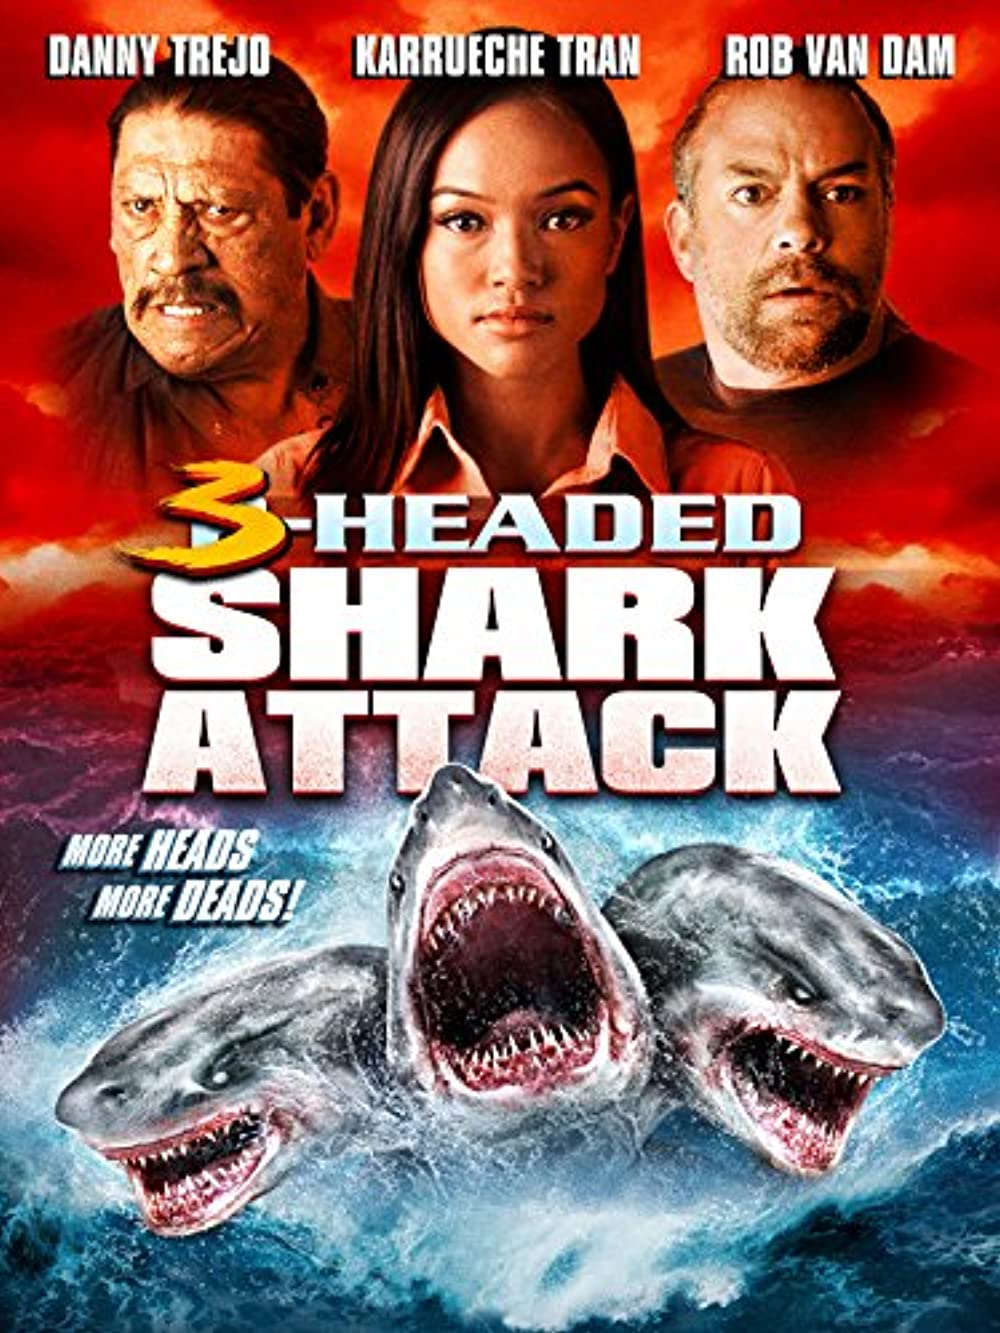 3 Headed Shark Attack 2015 Dual Audio 480p |720p BluRay [Hindi ORG + English]  x264 AAC 400MB |800MB Download